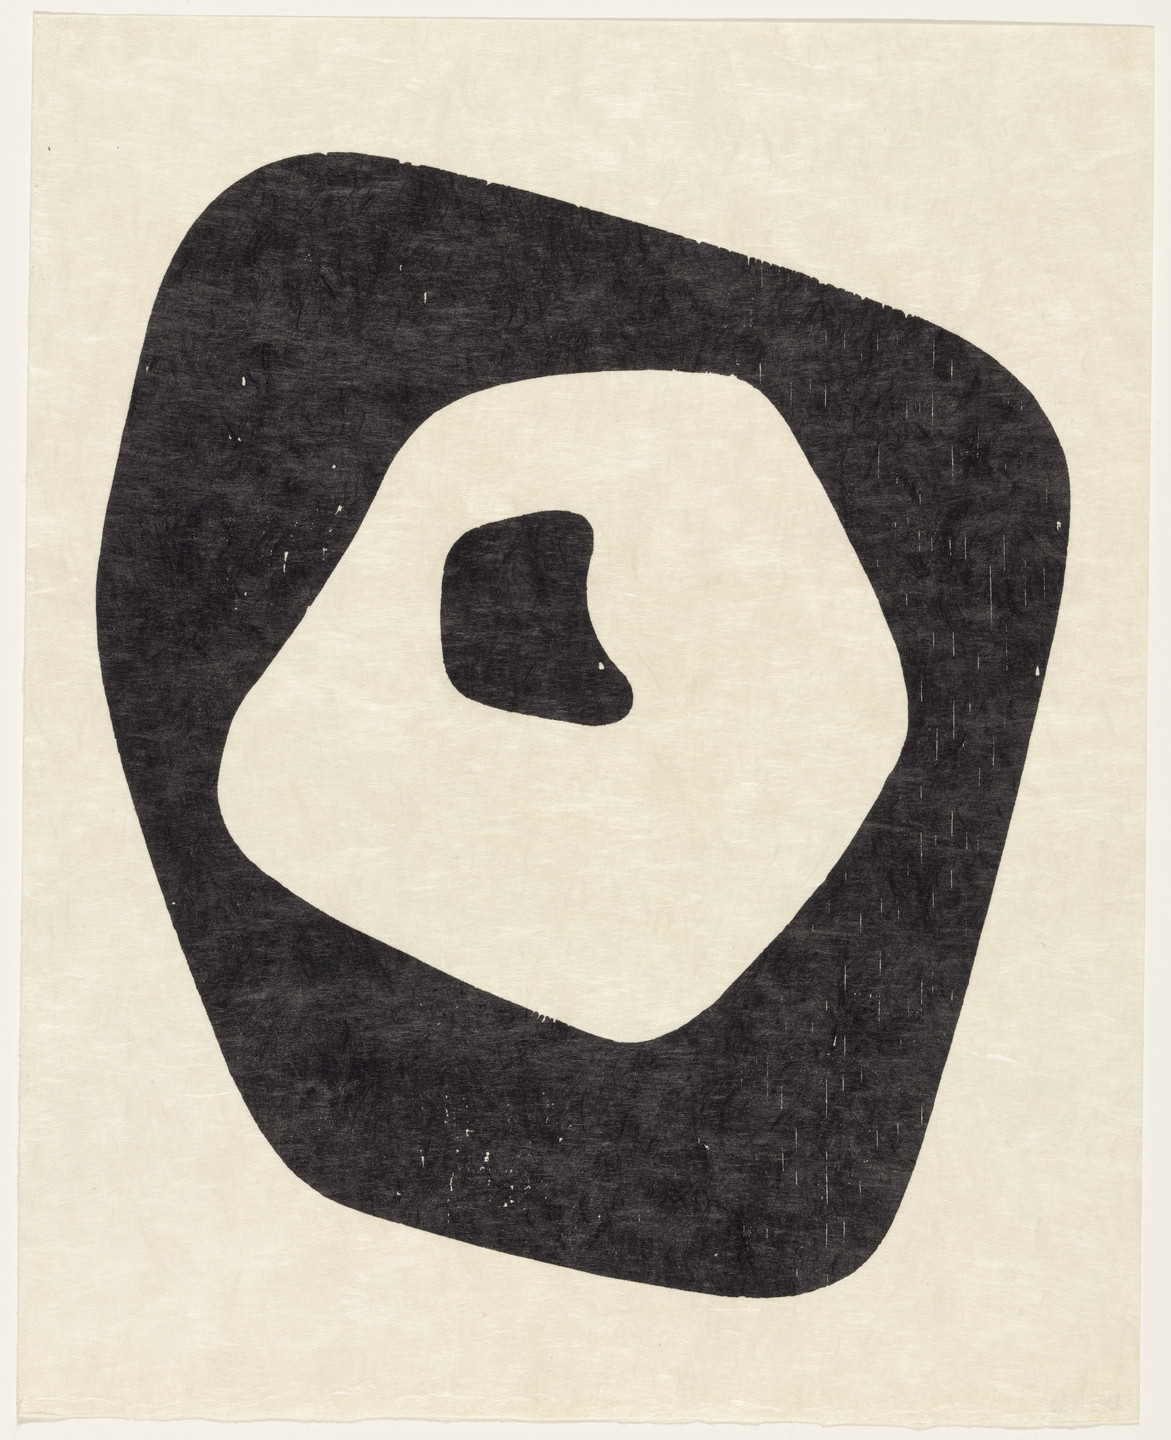 Jean (Hans) Arp. Silent Tension (plate, supplementary suite) from Dreams and Projects. 1951–52, published 1952